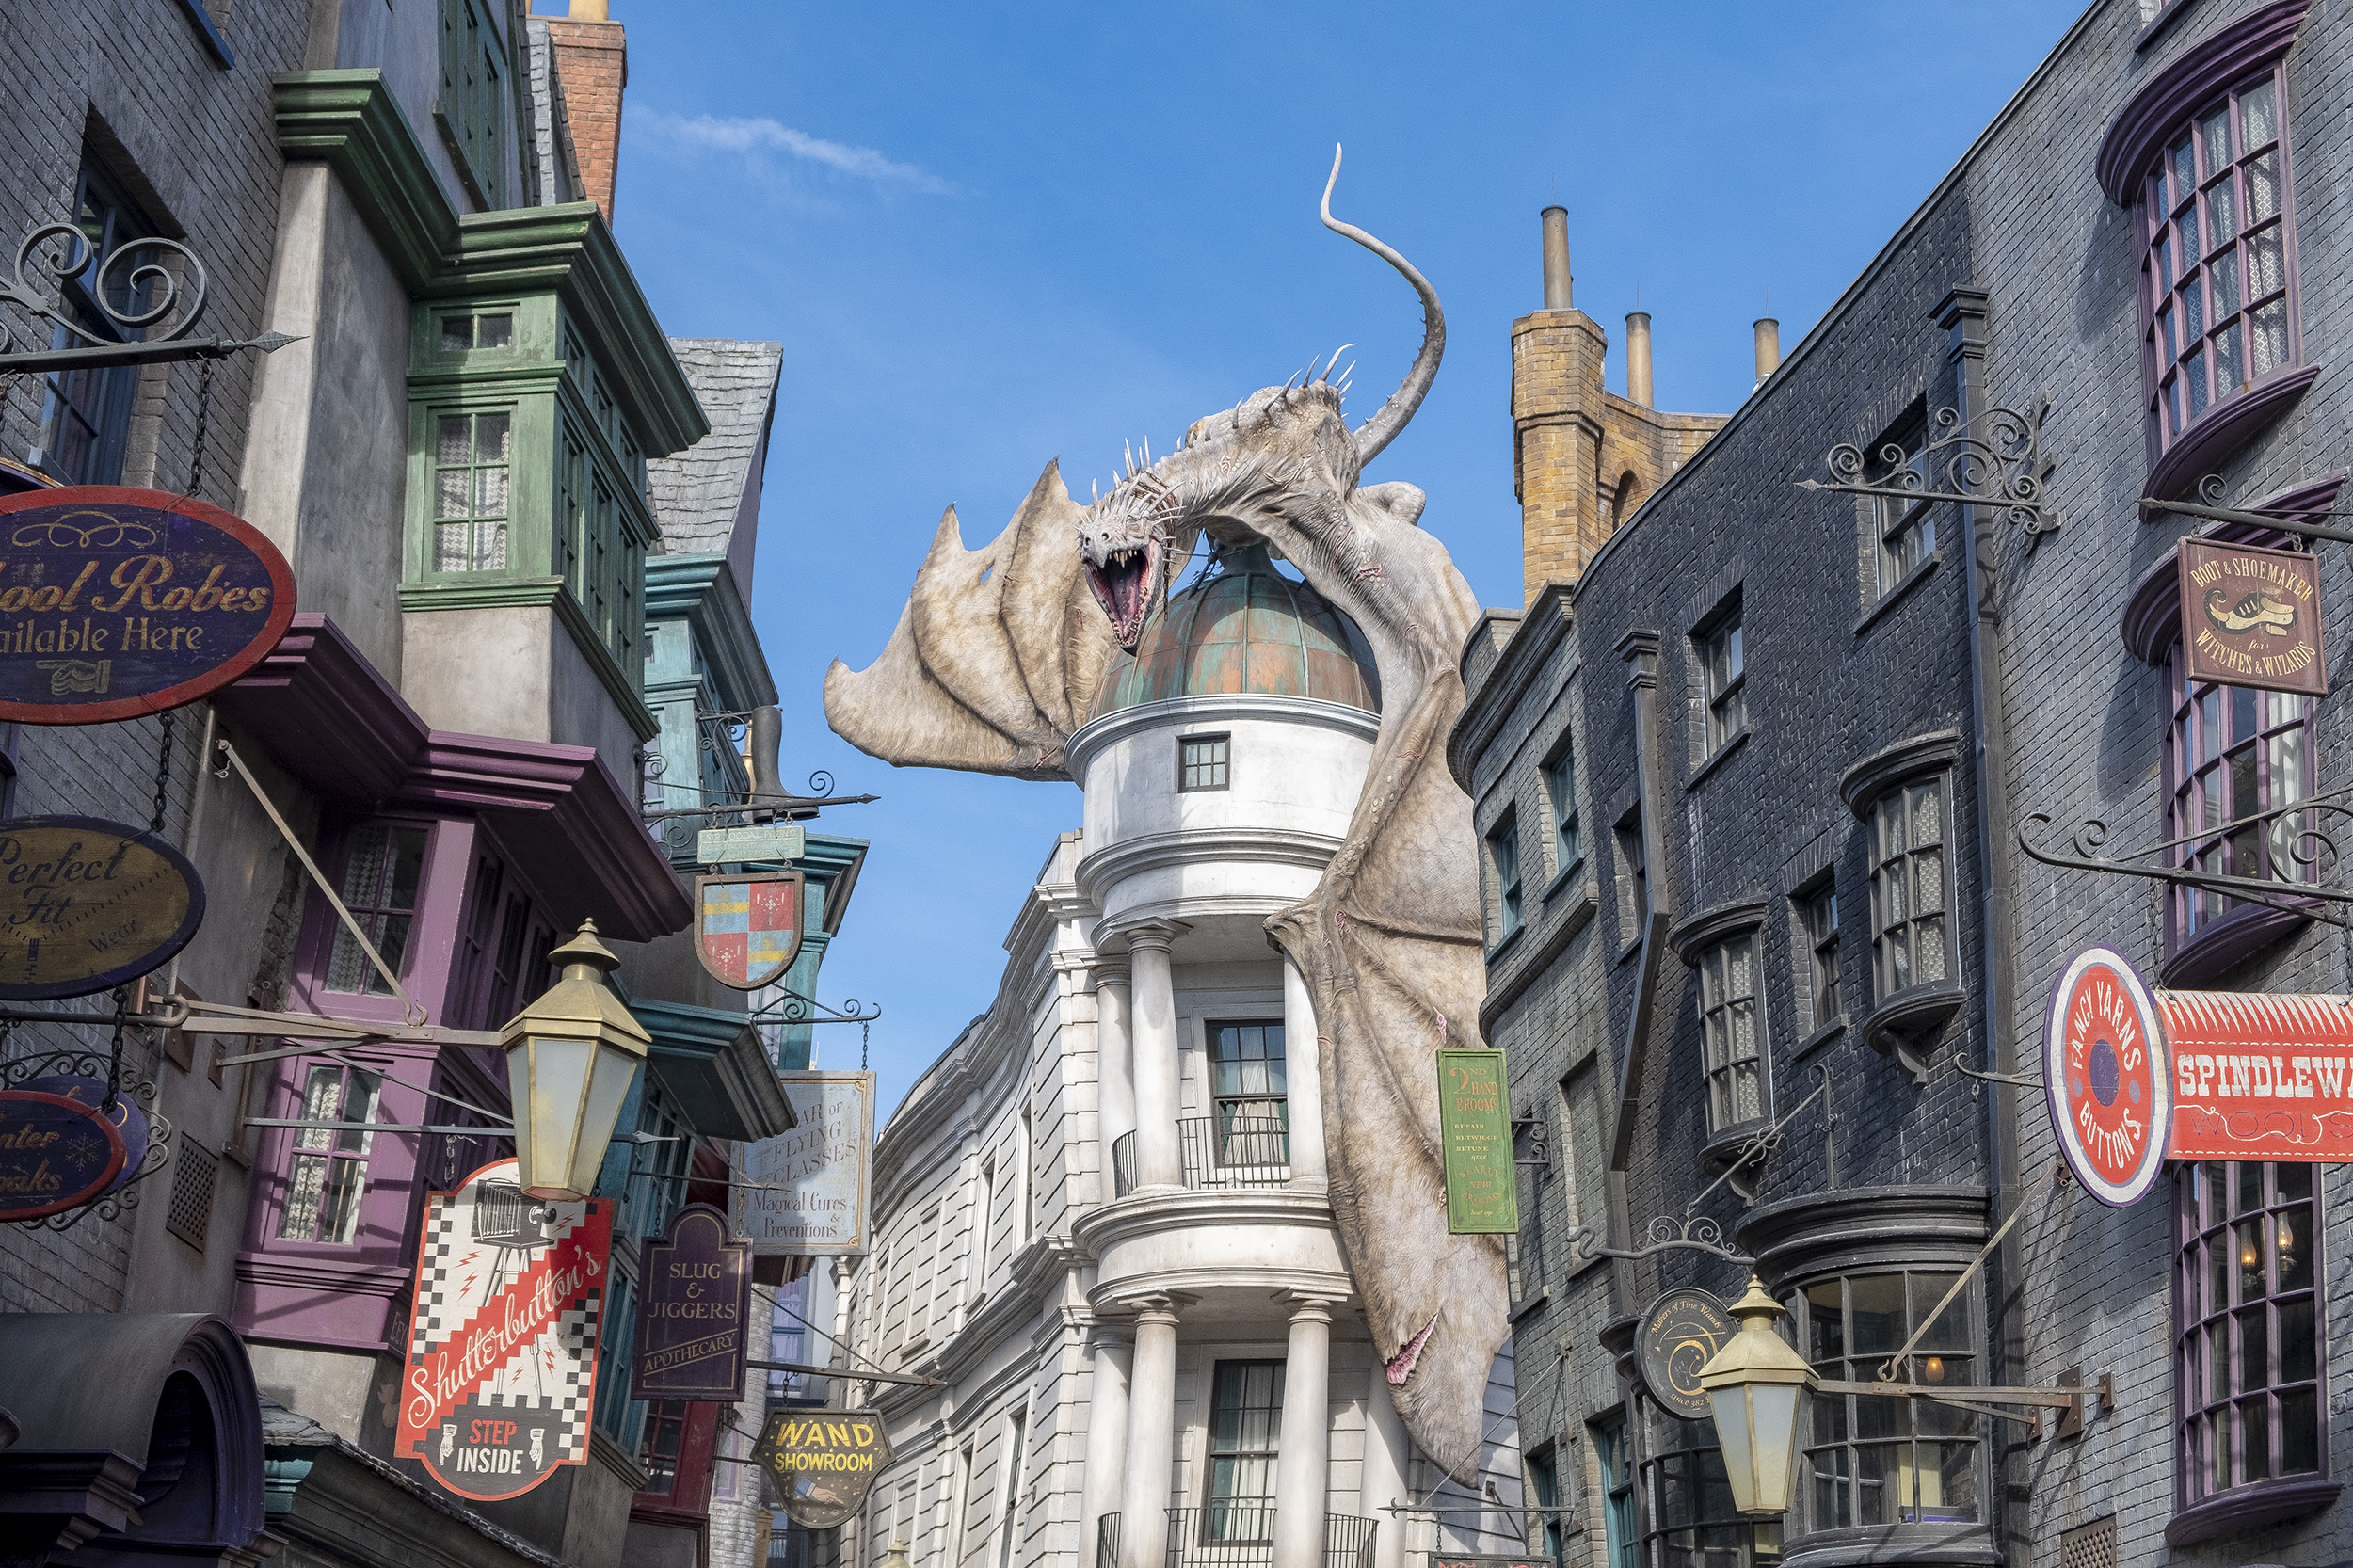 Gringotts Bank The Wizarding World of Harry Potter.